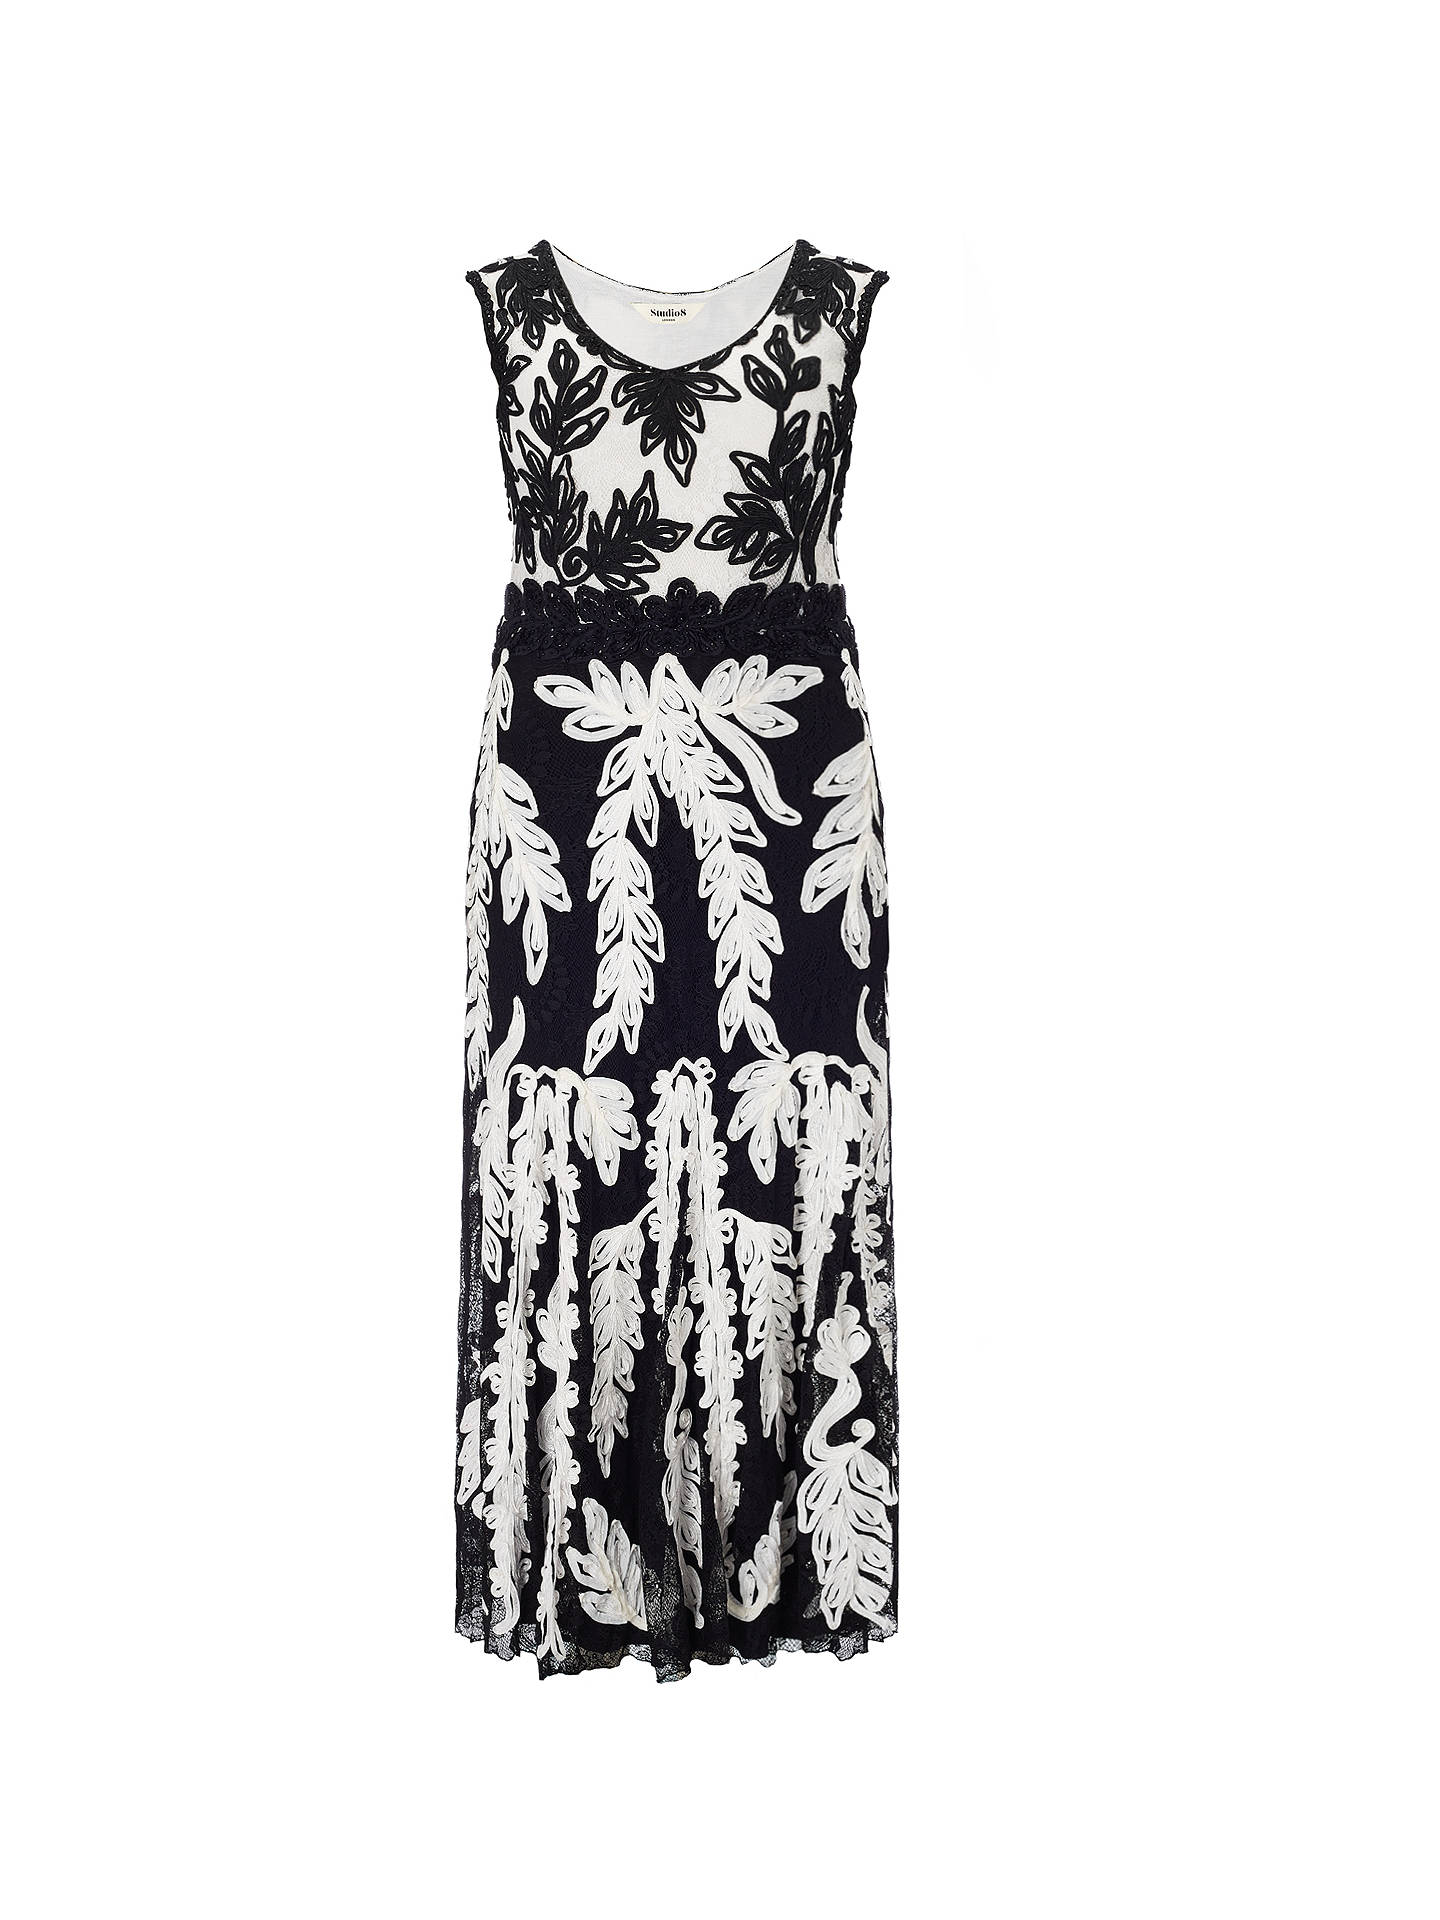 BuyStudio 8 Lizzie Tapework Maxi Dress, Black/White, 16 Online at johnlewis.com